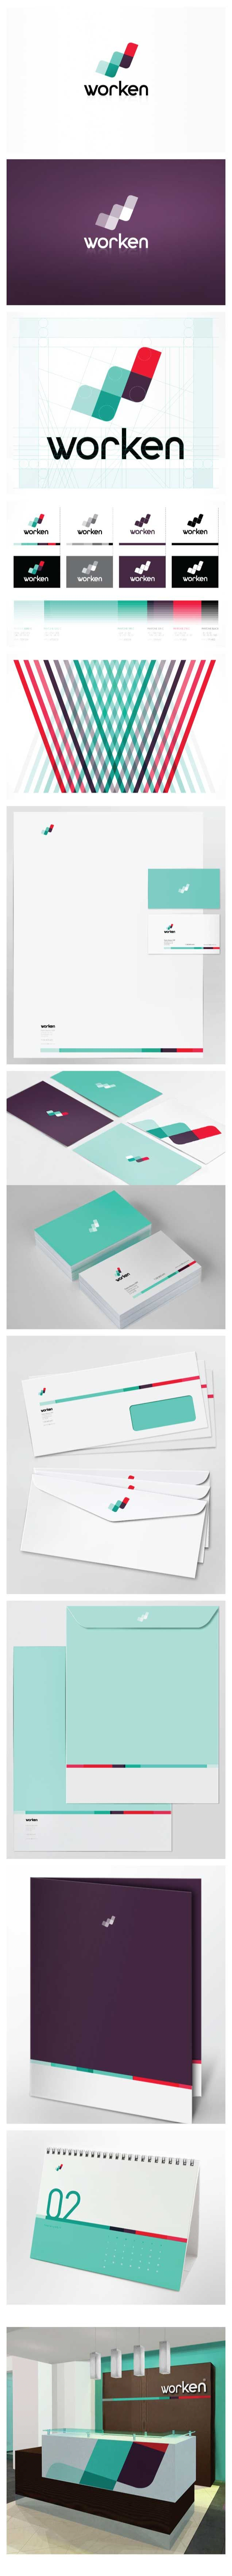 by Paola Flores | #stationary #corporate #design #corporatedesign #logo #identity < < repinned by www.BlickeDeeler.de | Follow us on www.facebook.com/BlickeDeeler